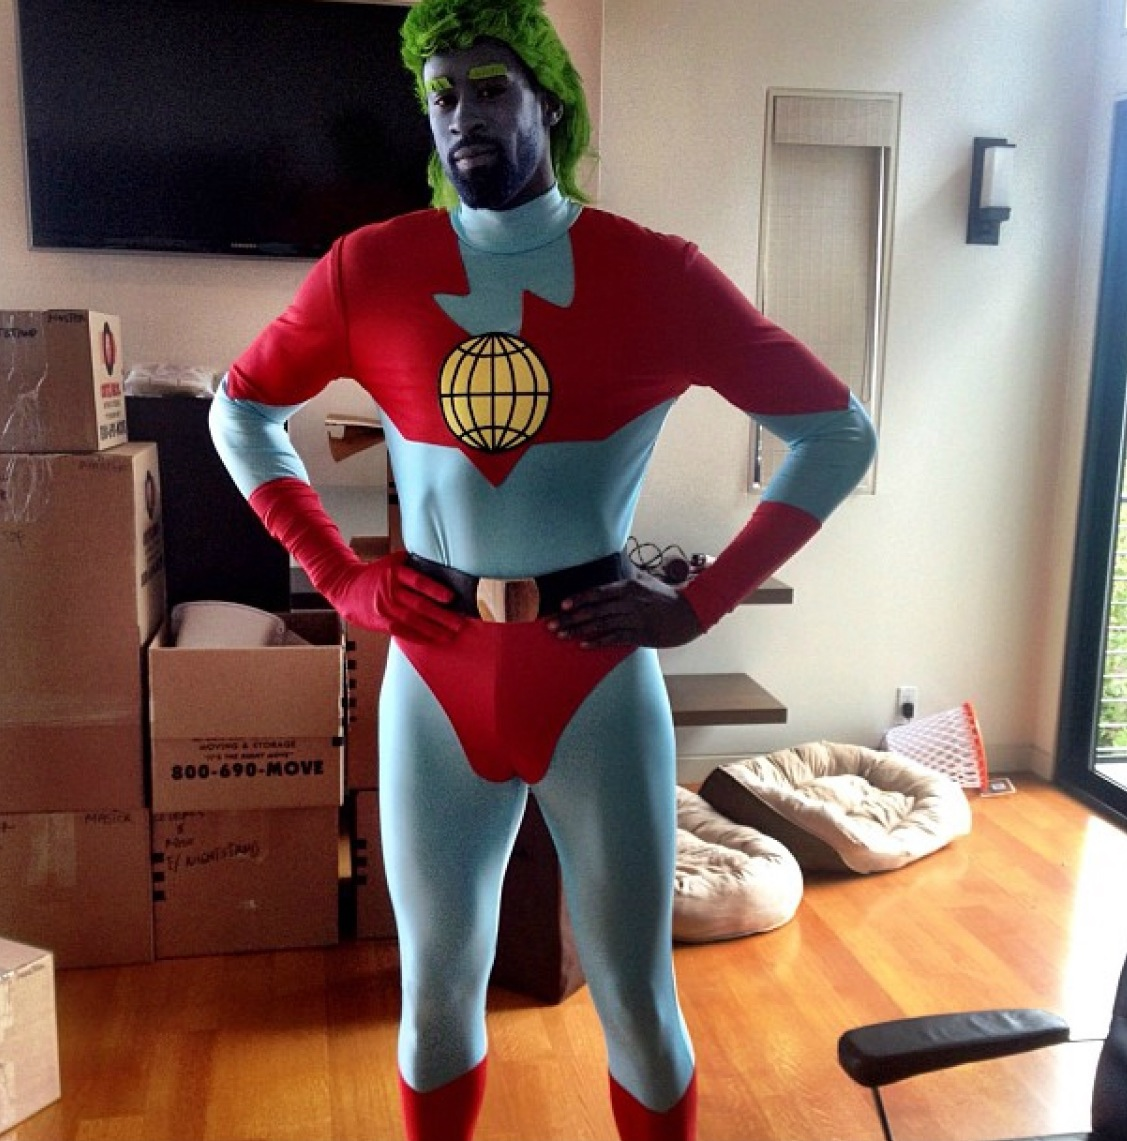 mico halili: deandre jordan goes to a costume party as captain